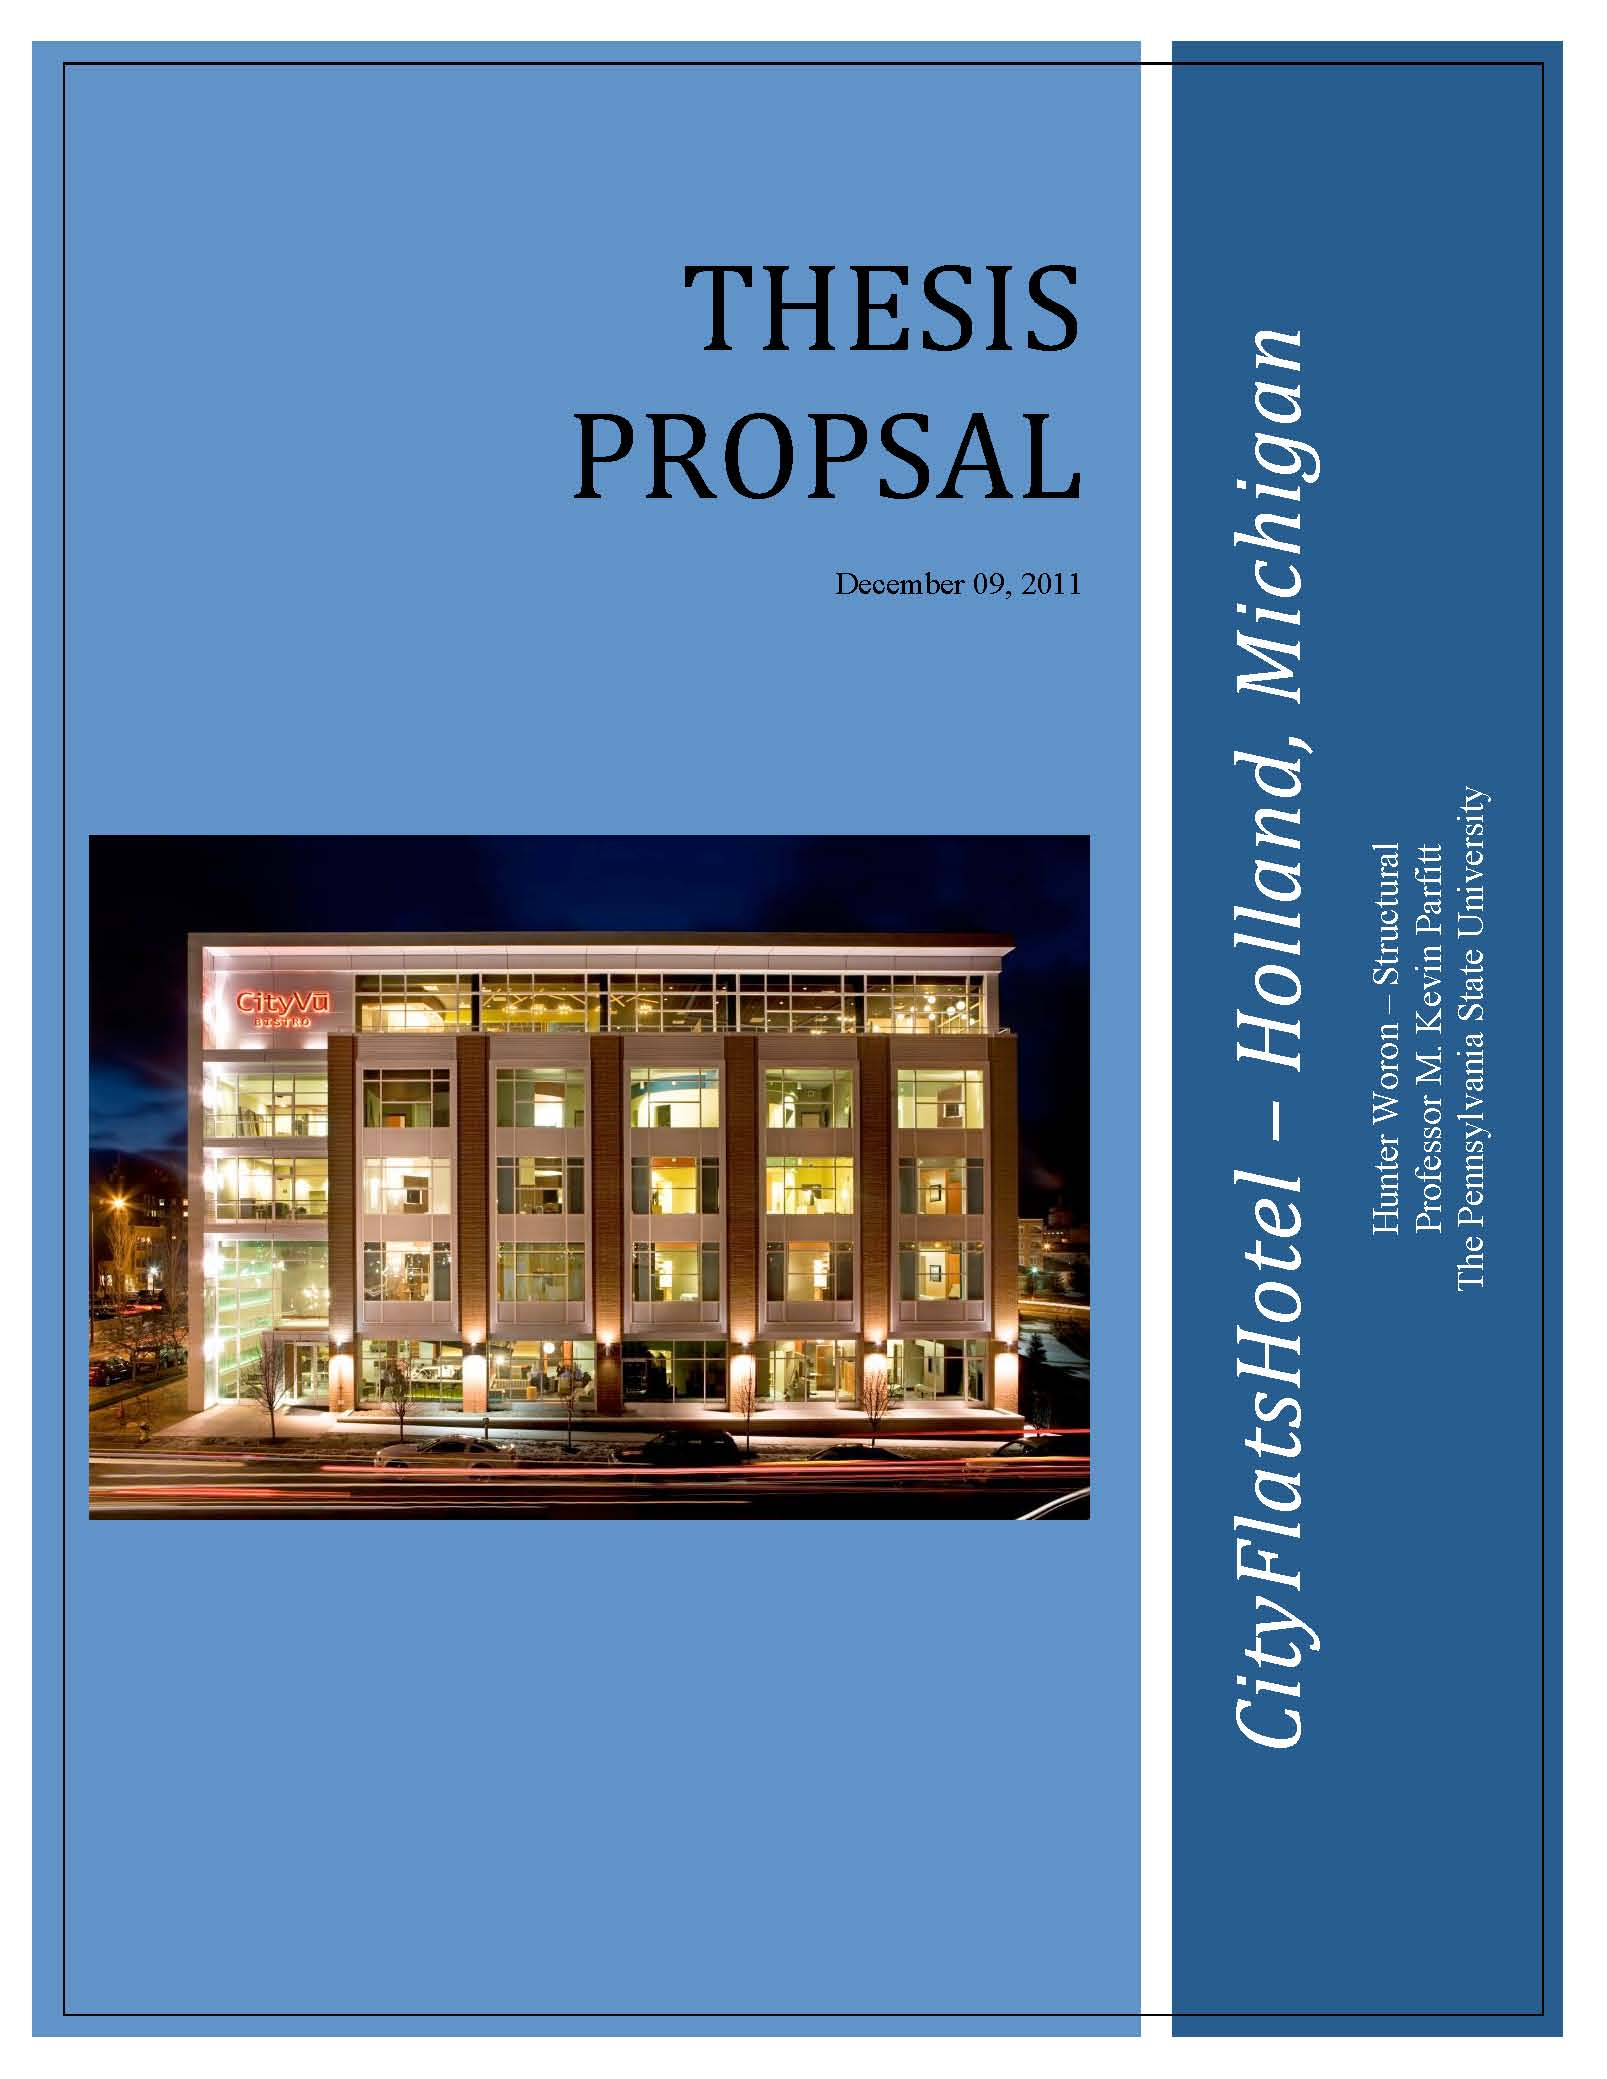 Dissertation Binding Southampton Proposal Cover Page Dissertation Binding Southampton